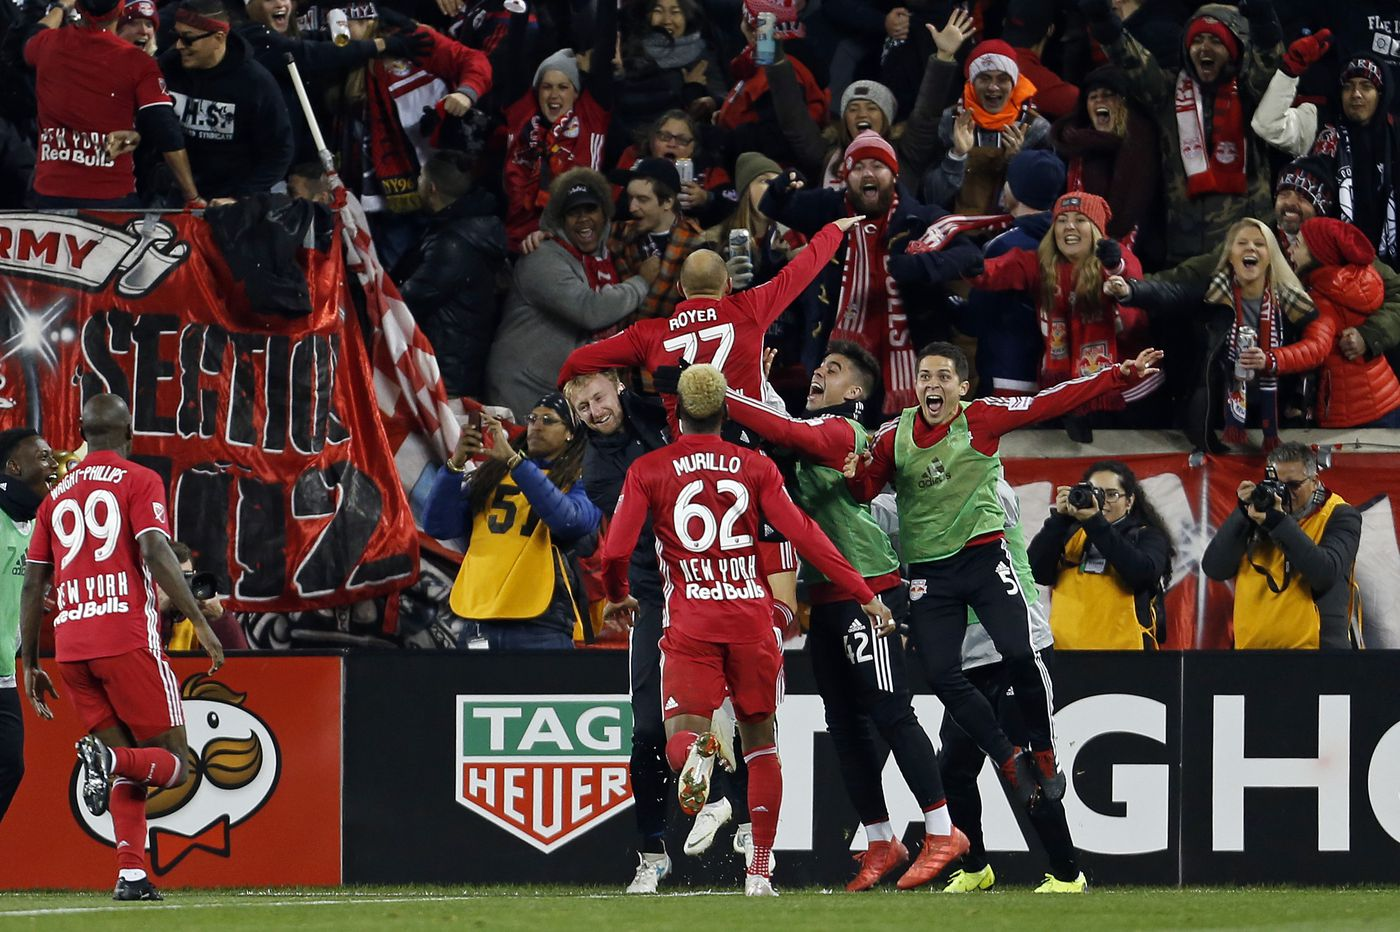 New York Red Bulls beat Columbus Crew to advance; Crew manager Berhalter now open for USMNT